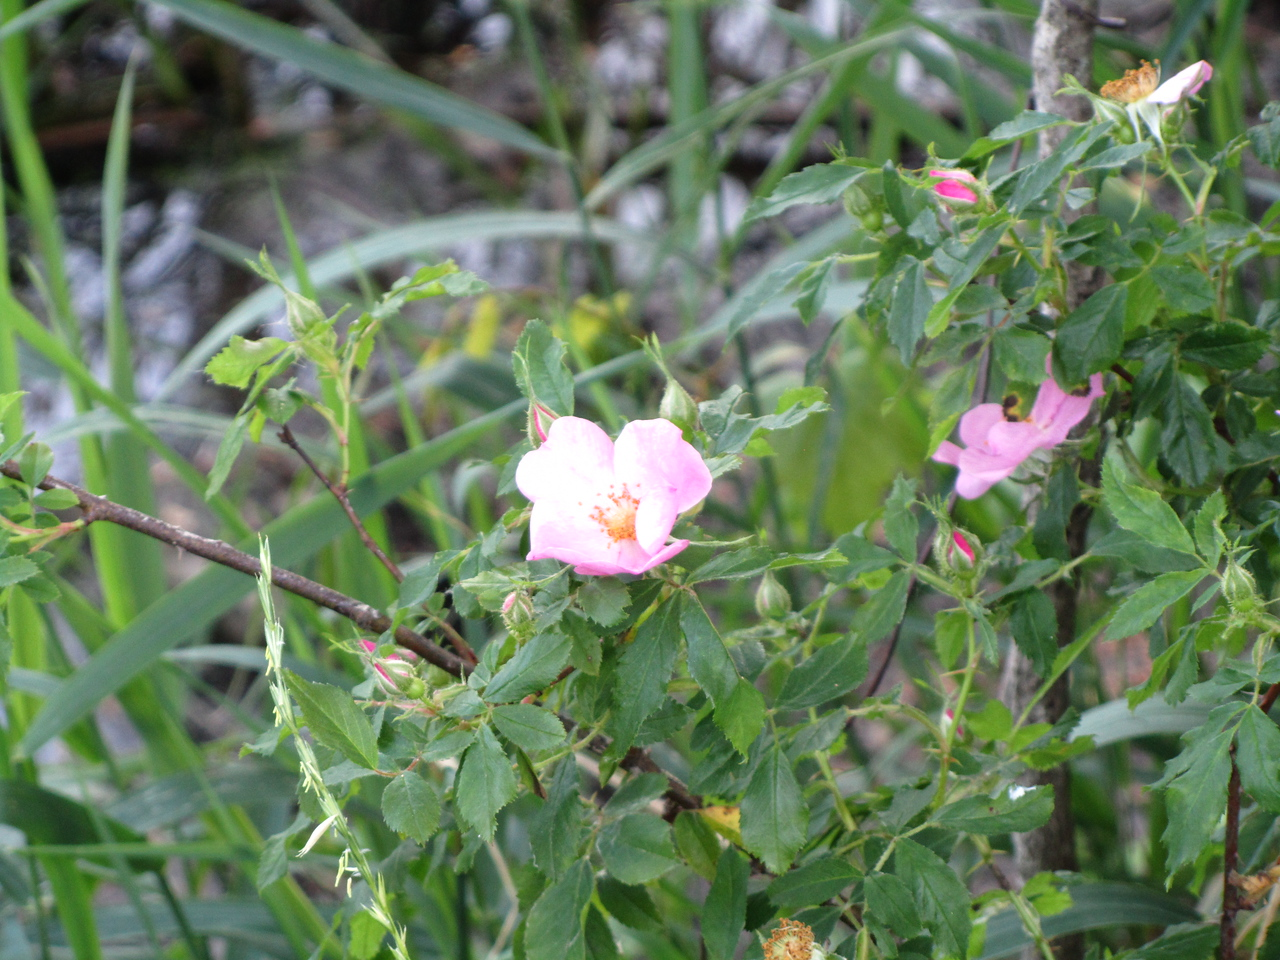 Wild Rose along the banks of the Canal. Guessing someone planted it here 100 years ago.